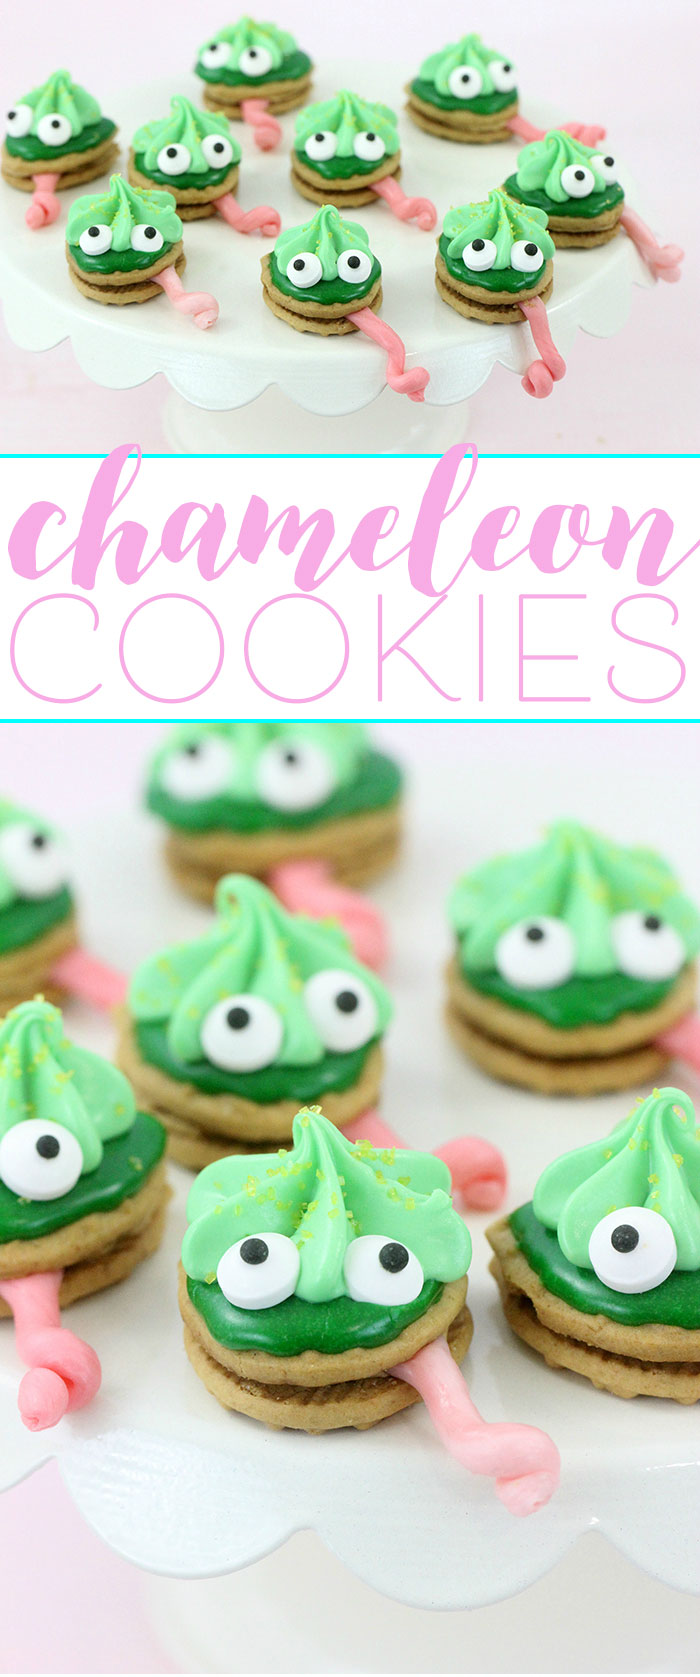 Chameleon cookies, perfect for themed parties! Easy to make with only a handful of easy to find ingredients.